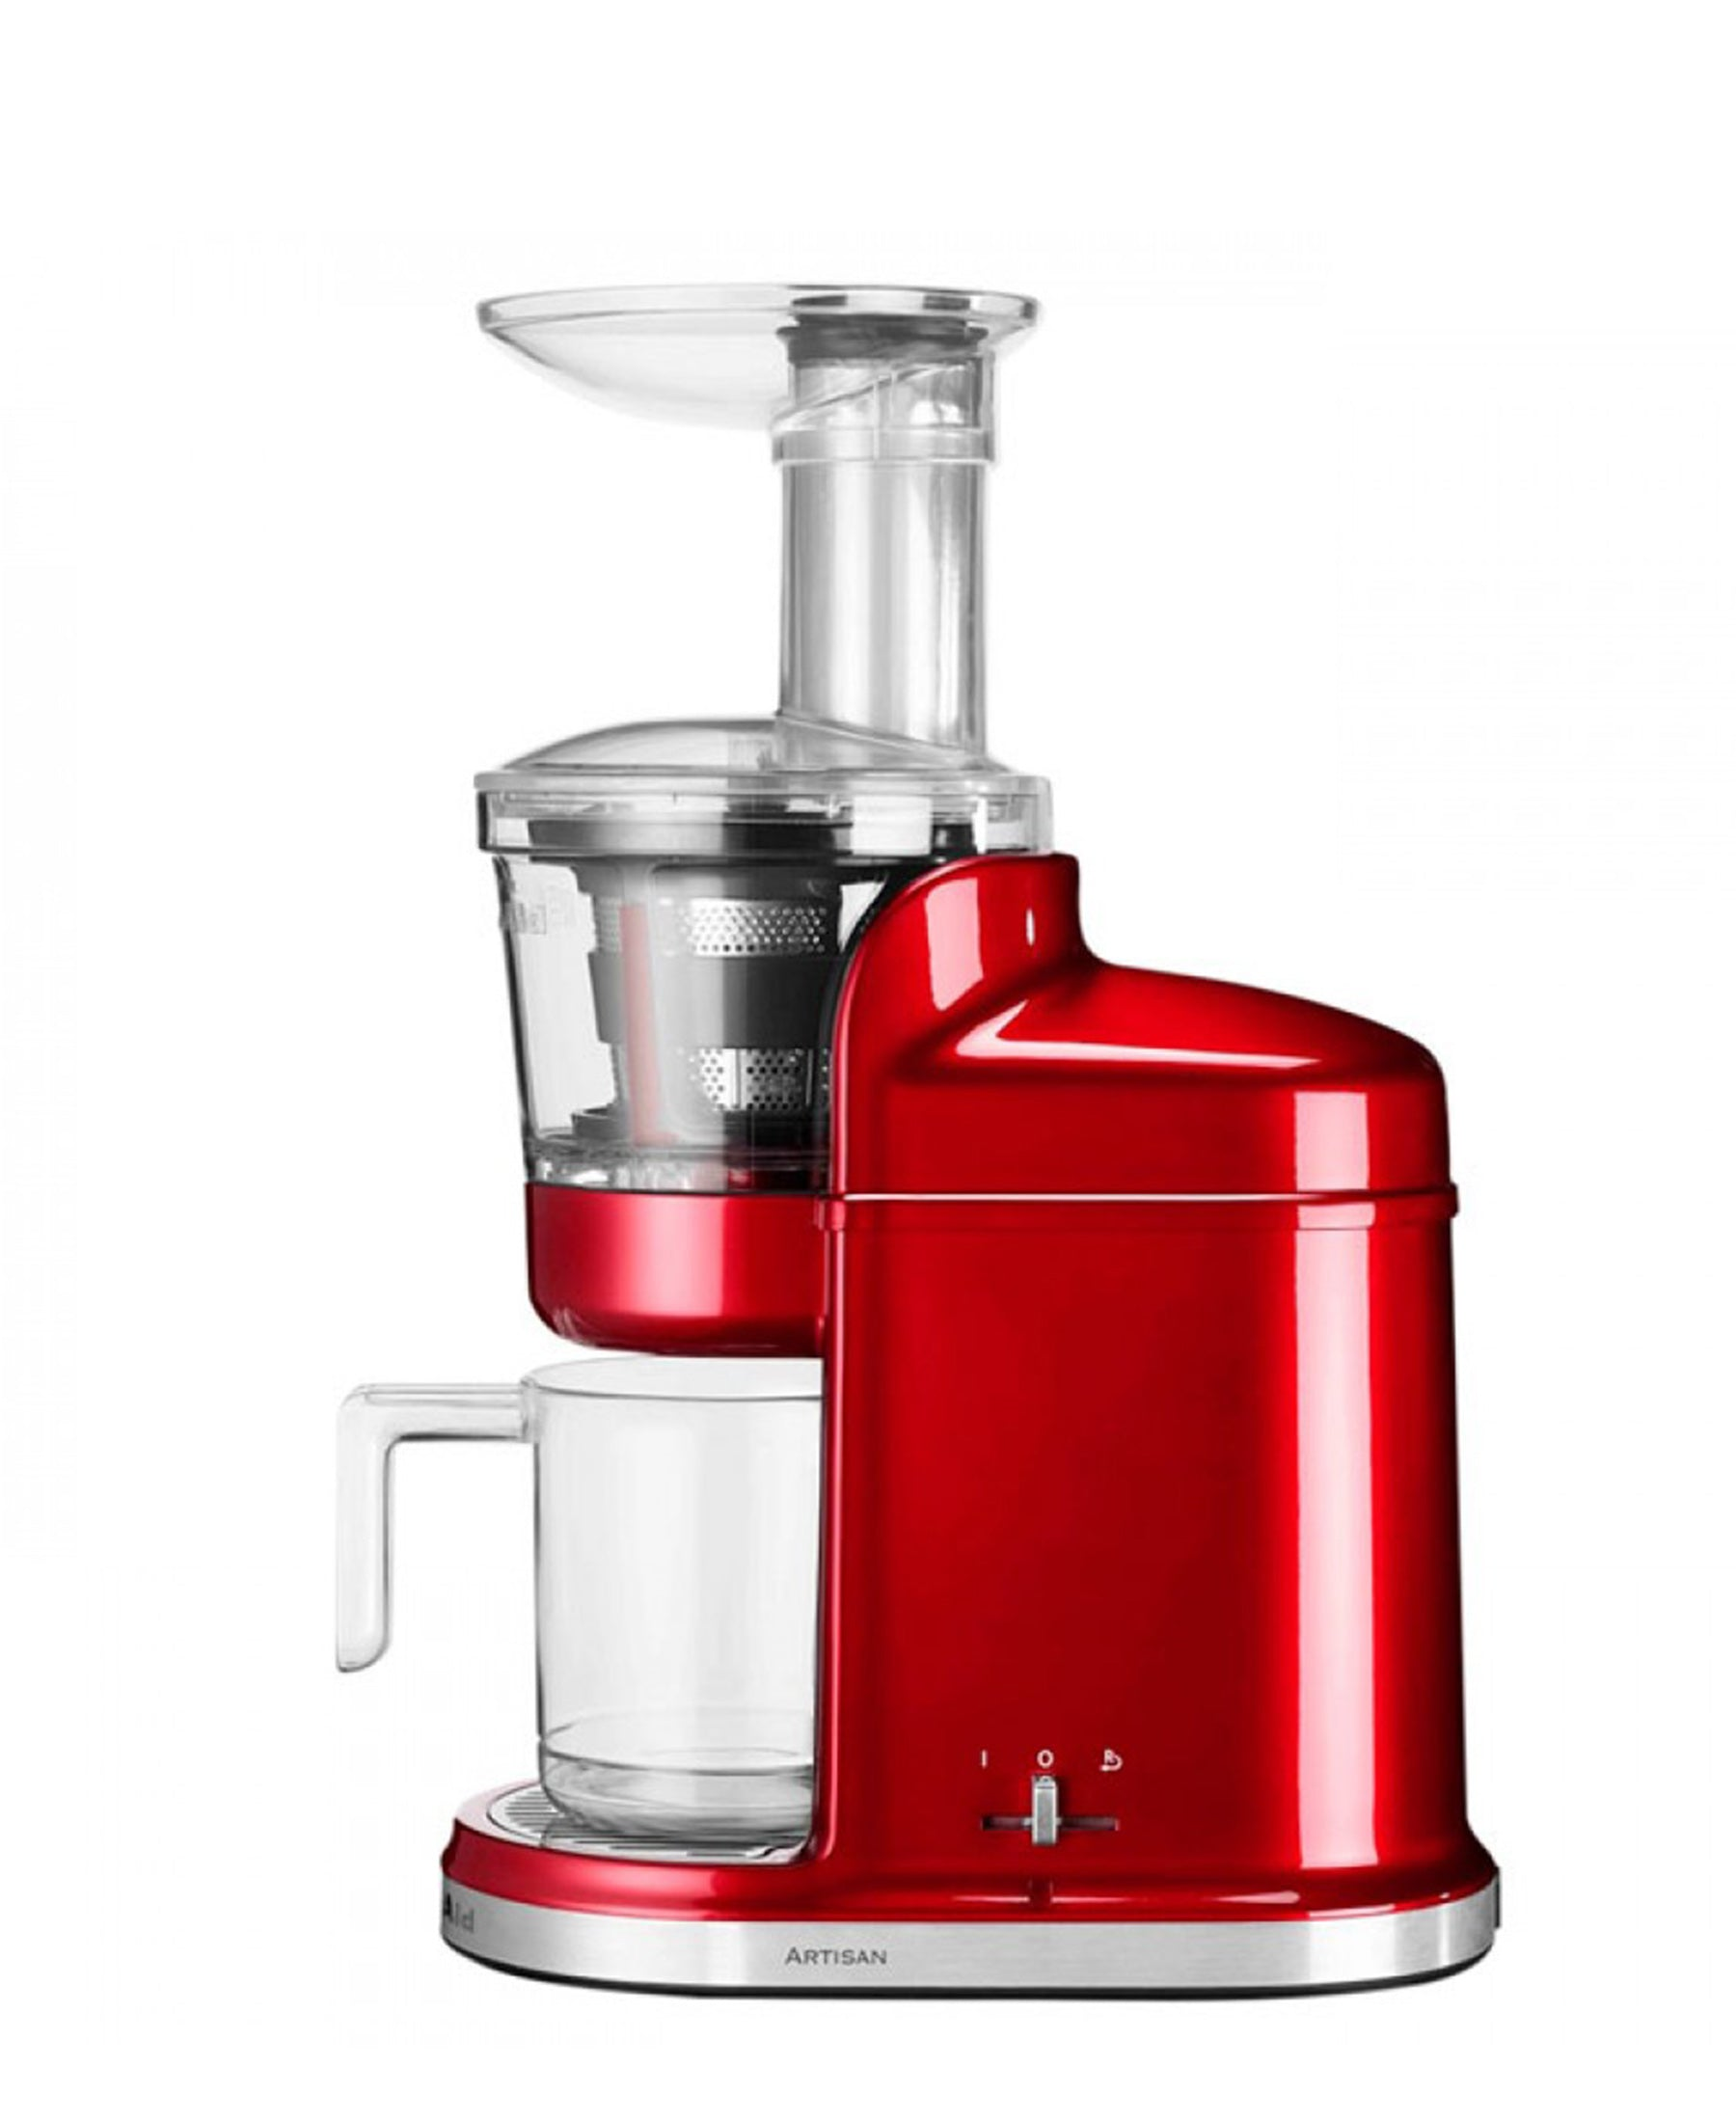 KitchenAid Maximum Extraction Juicer - Candy Apple Red